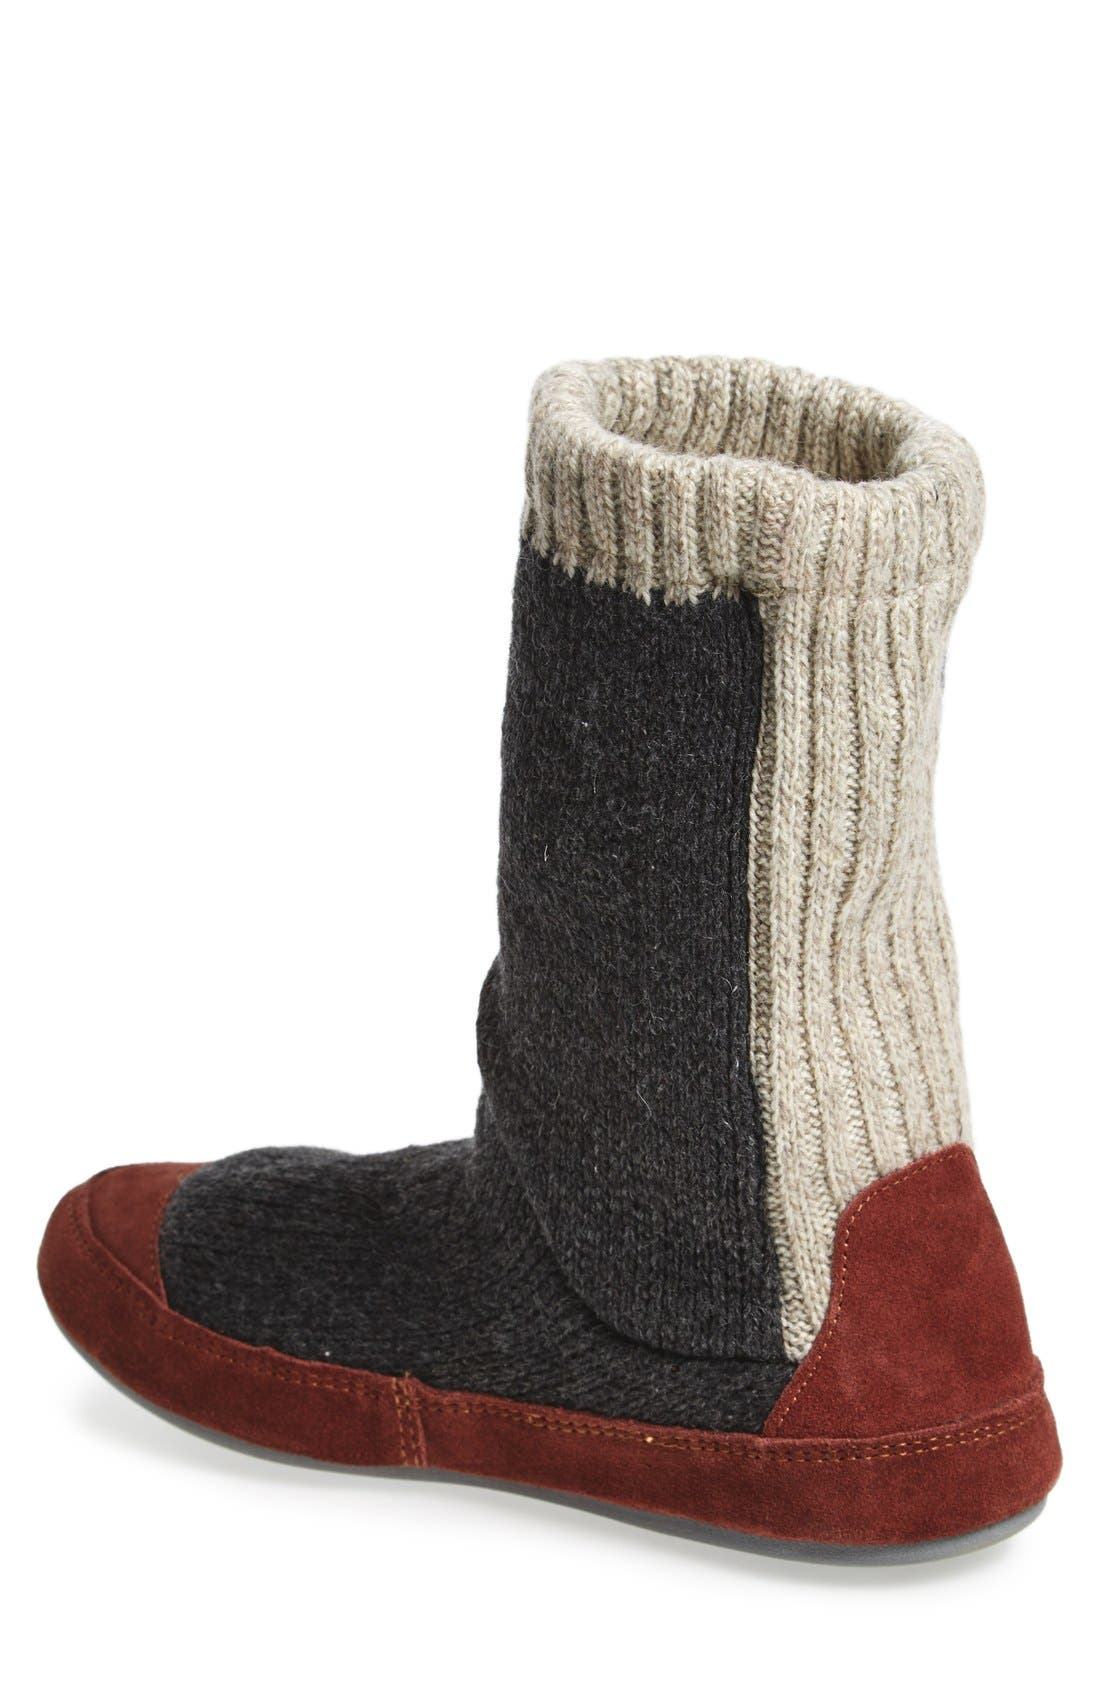 'Slouch Boot' Slipper,                             Alternate thumbnail 5, color,                             020